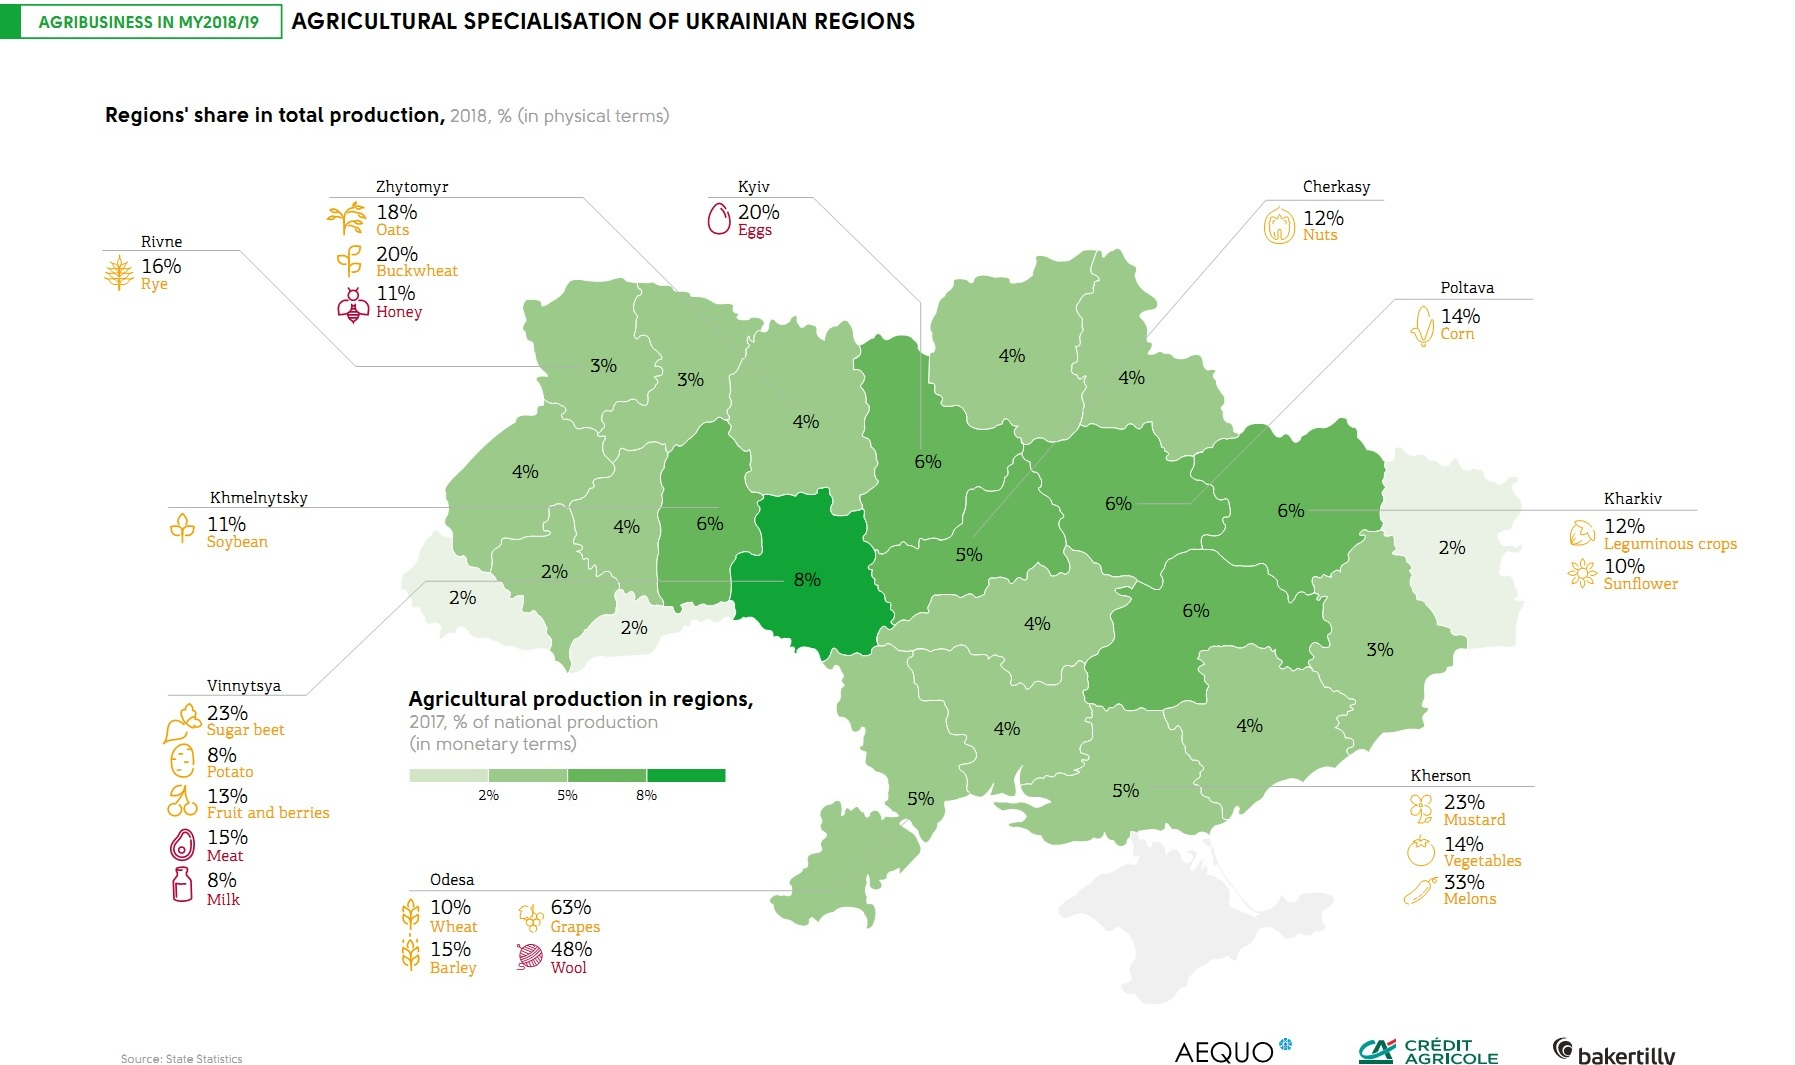 Agricultural specialization of Ukrainian regions (click for full resolution)